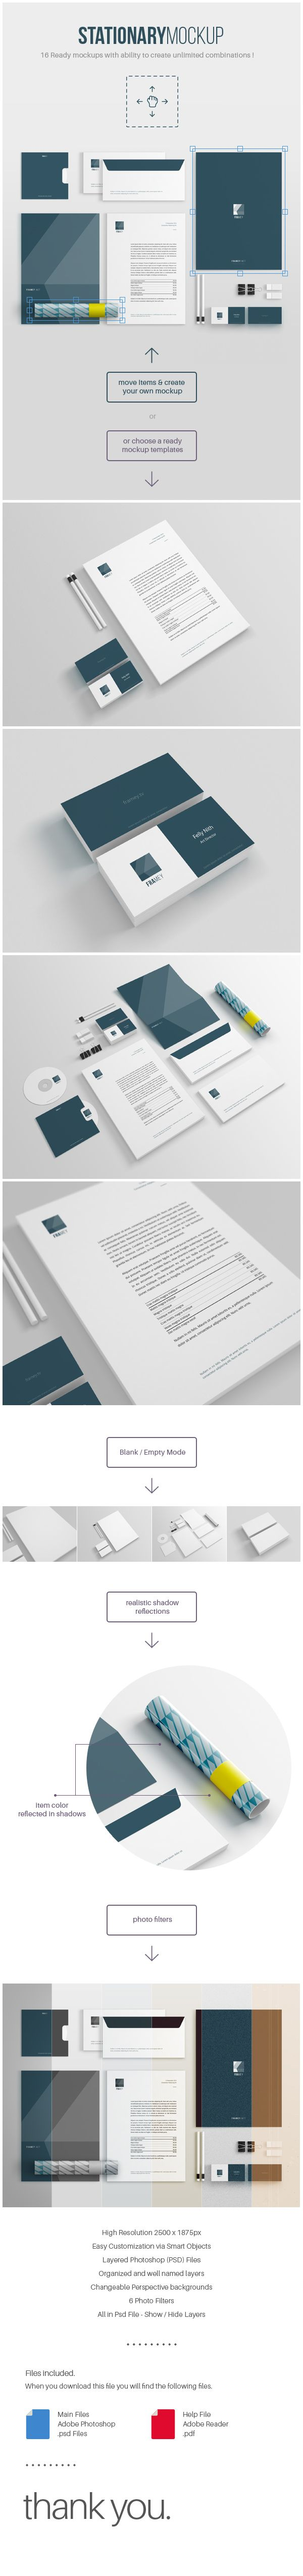 https://www.behance.net/gallery/21599411/Free-Stationery-Mockup